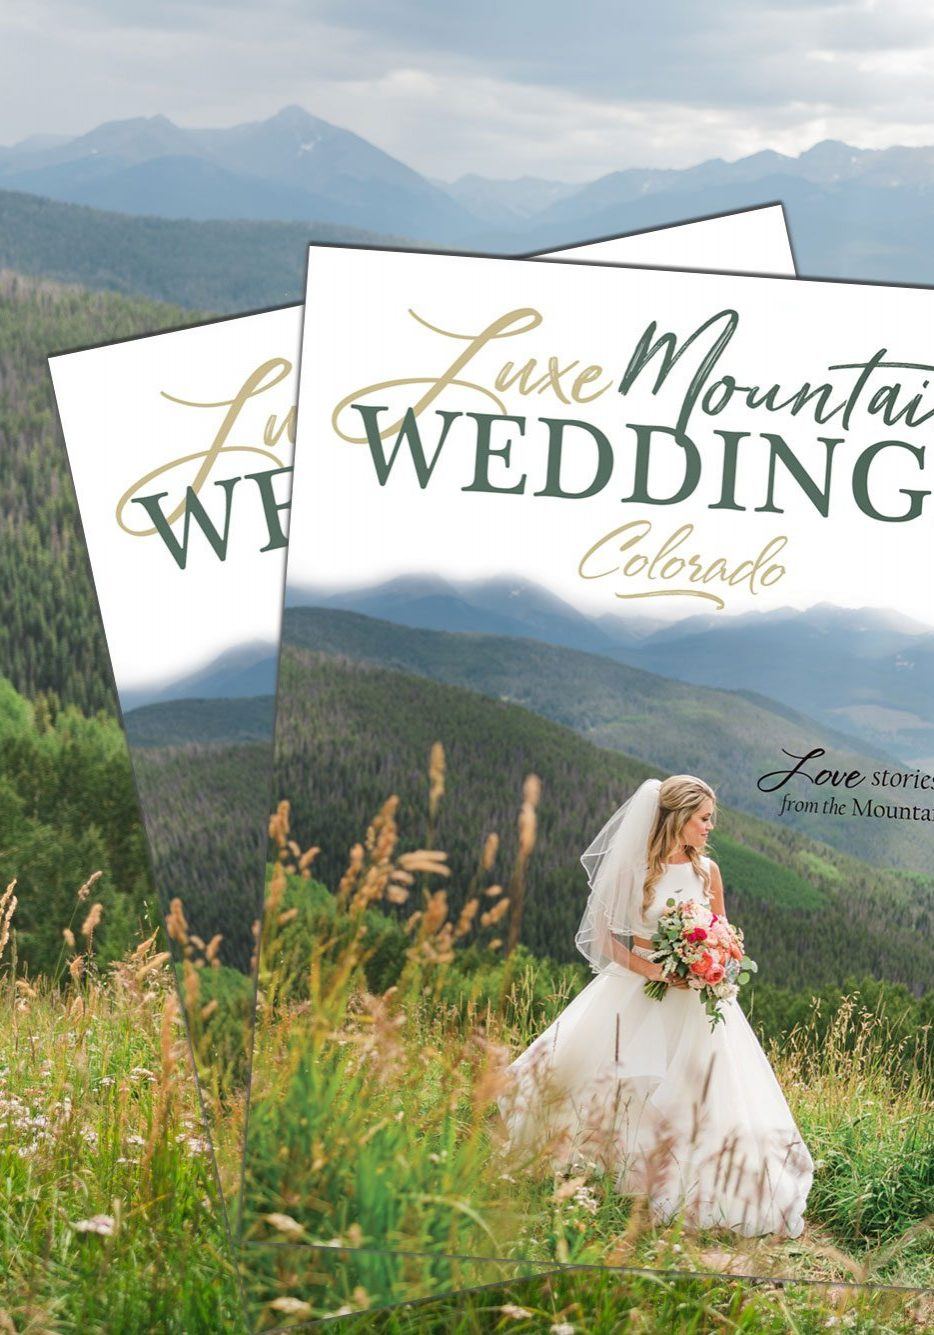 Luxe Mountain Weddings - Colorado 2017